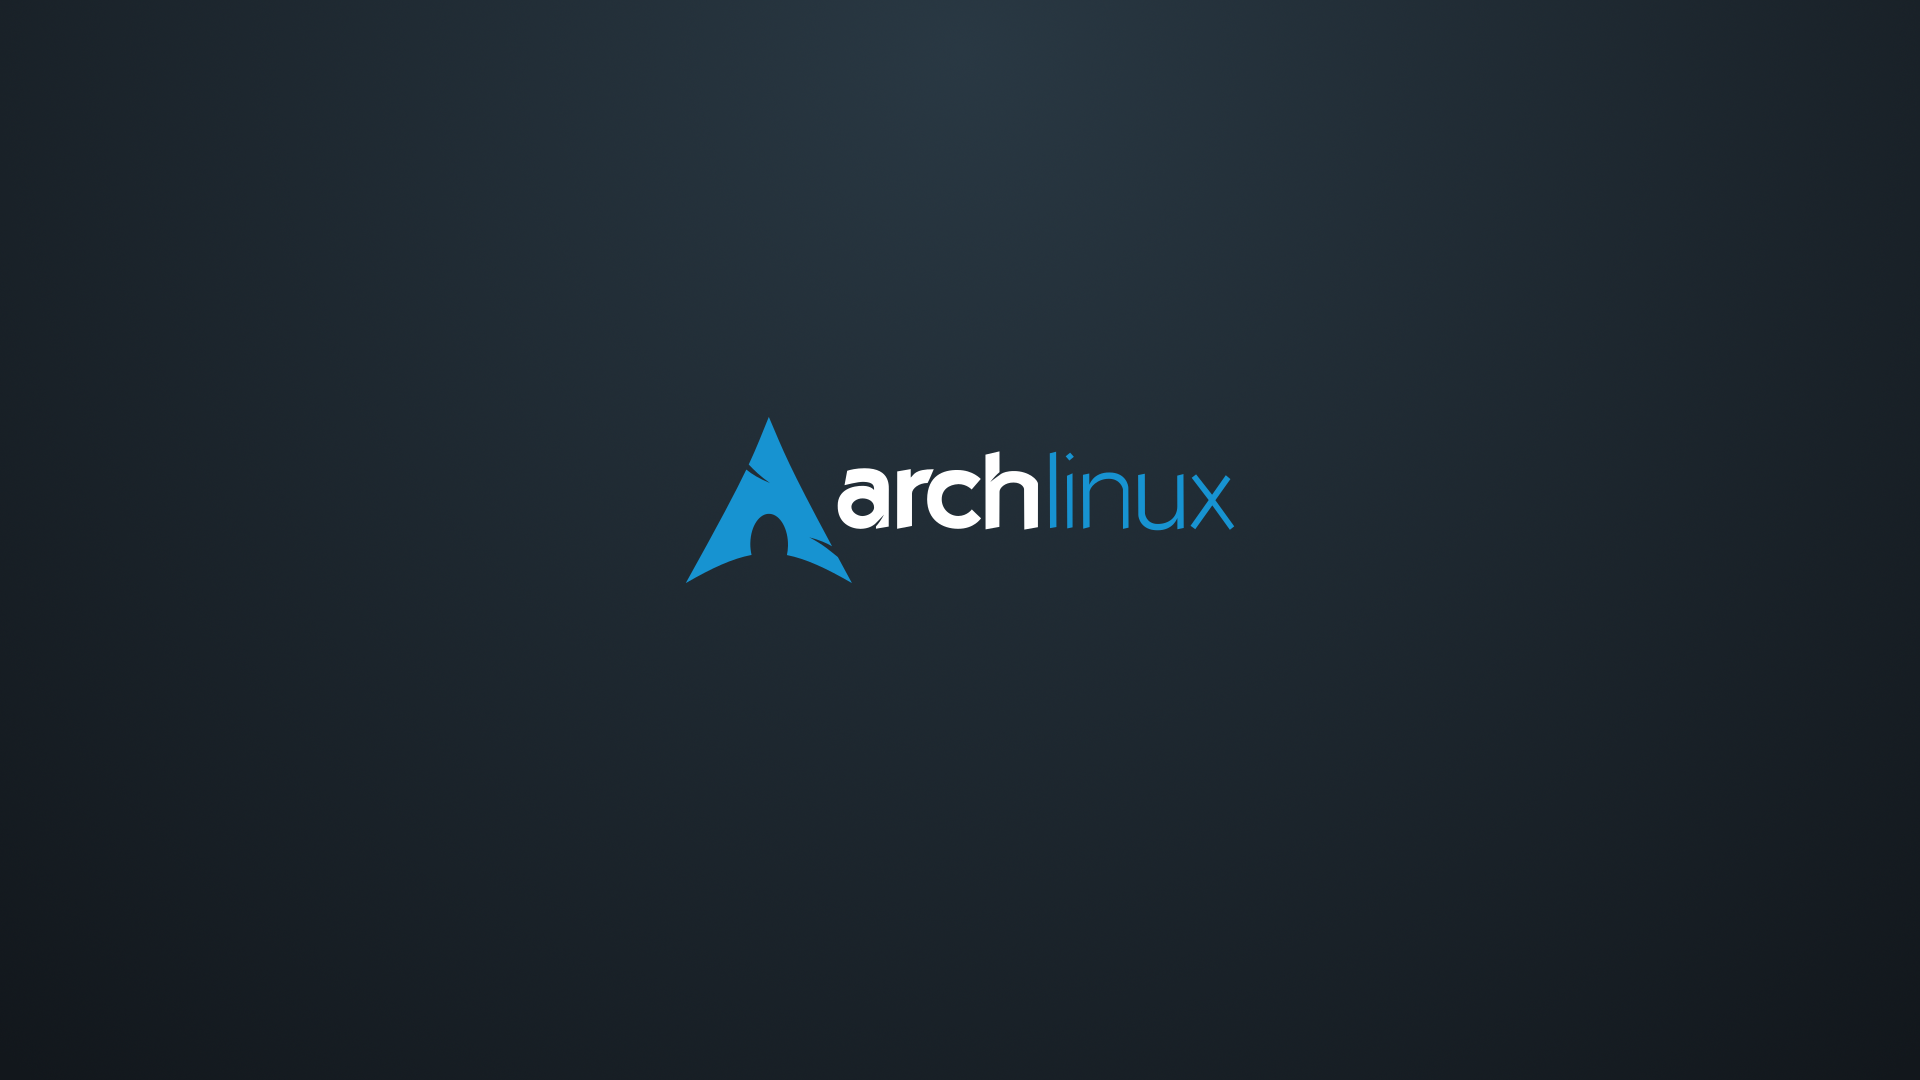 General 1920x1080 Arch Linux logo simple background operating system